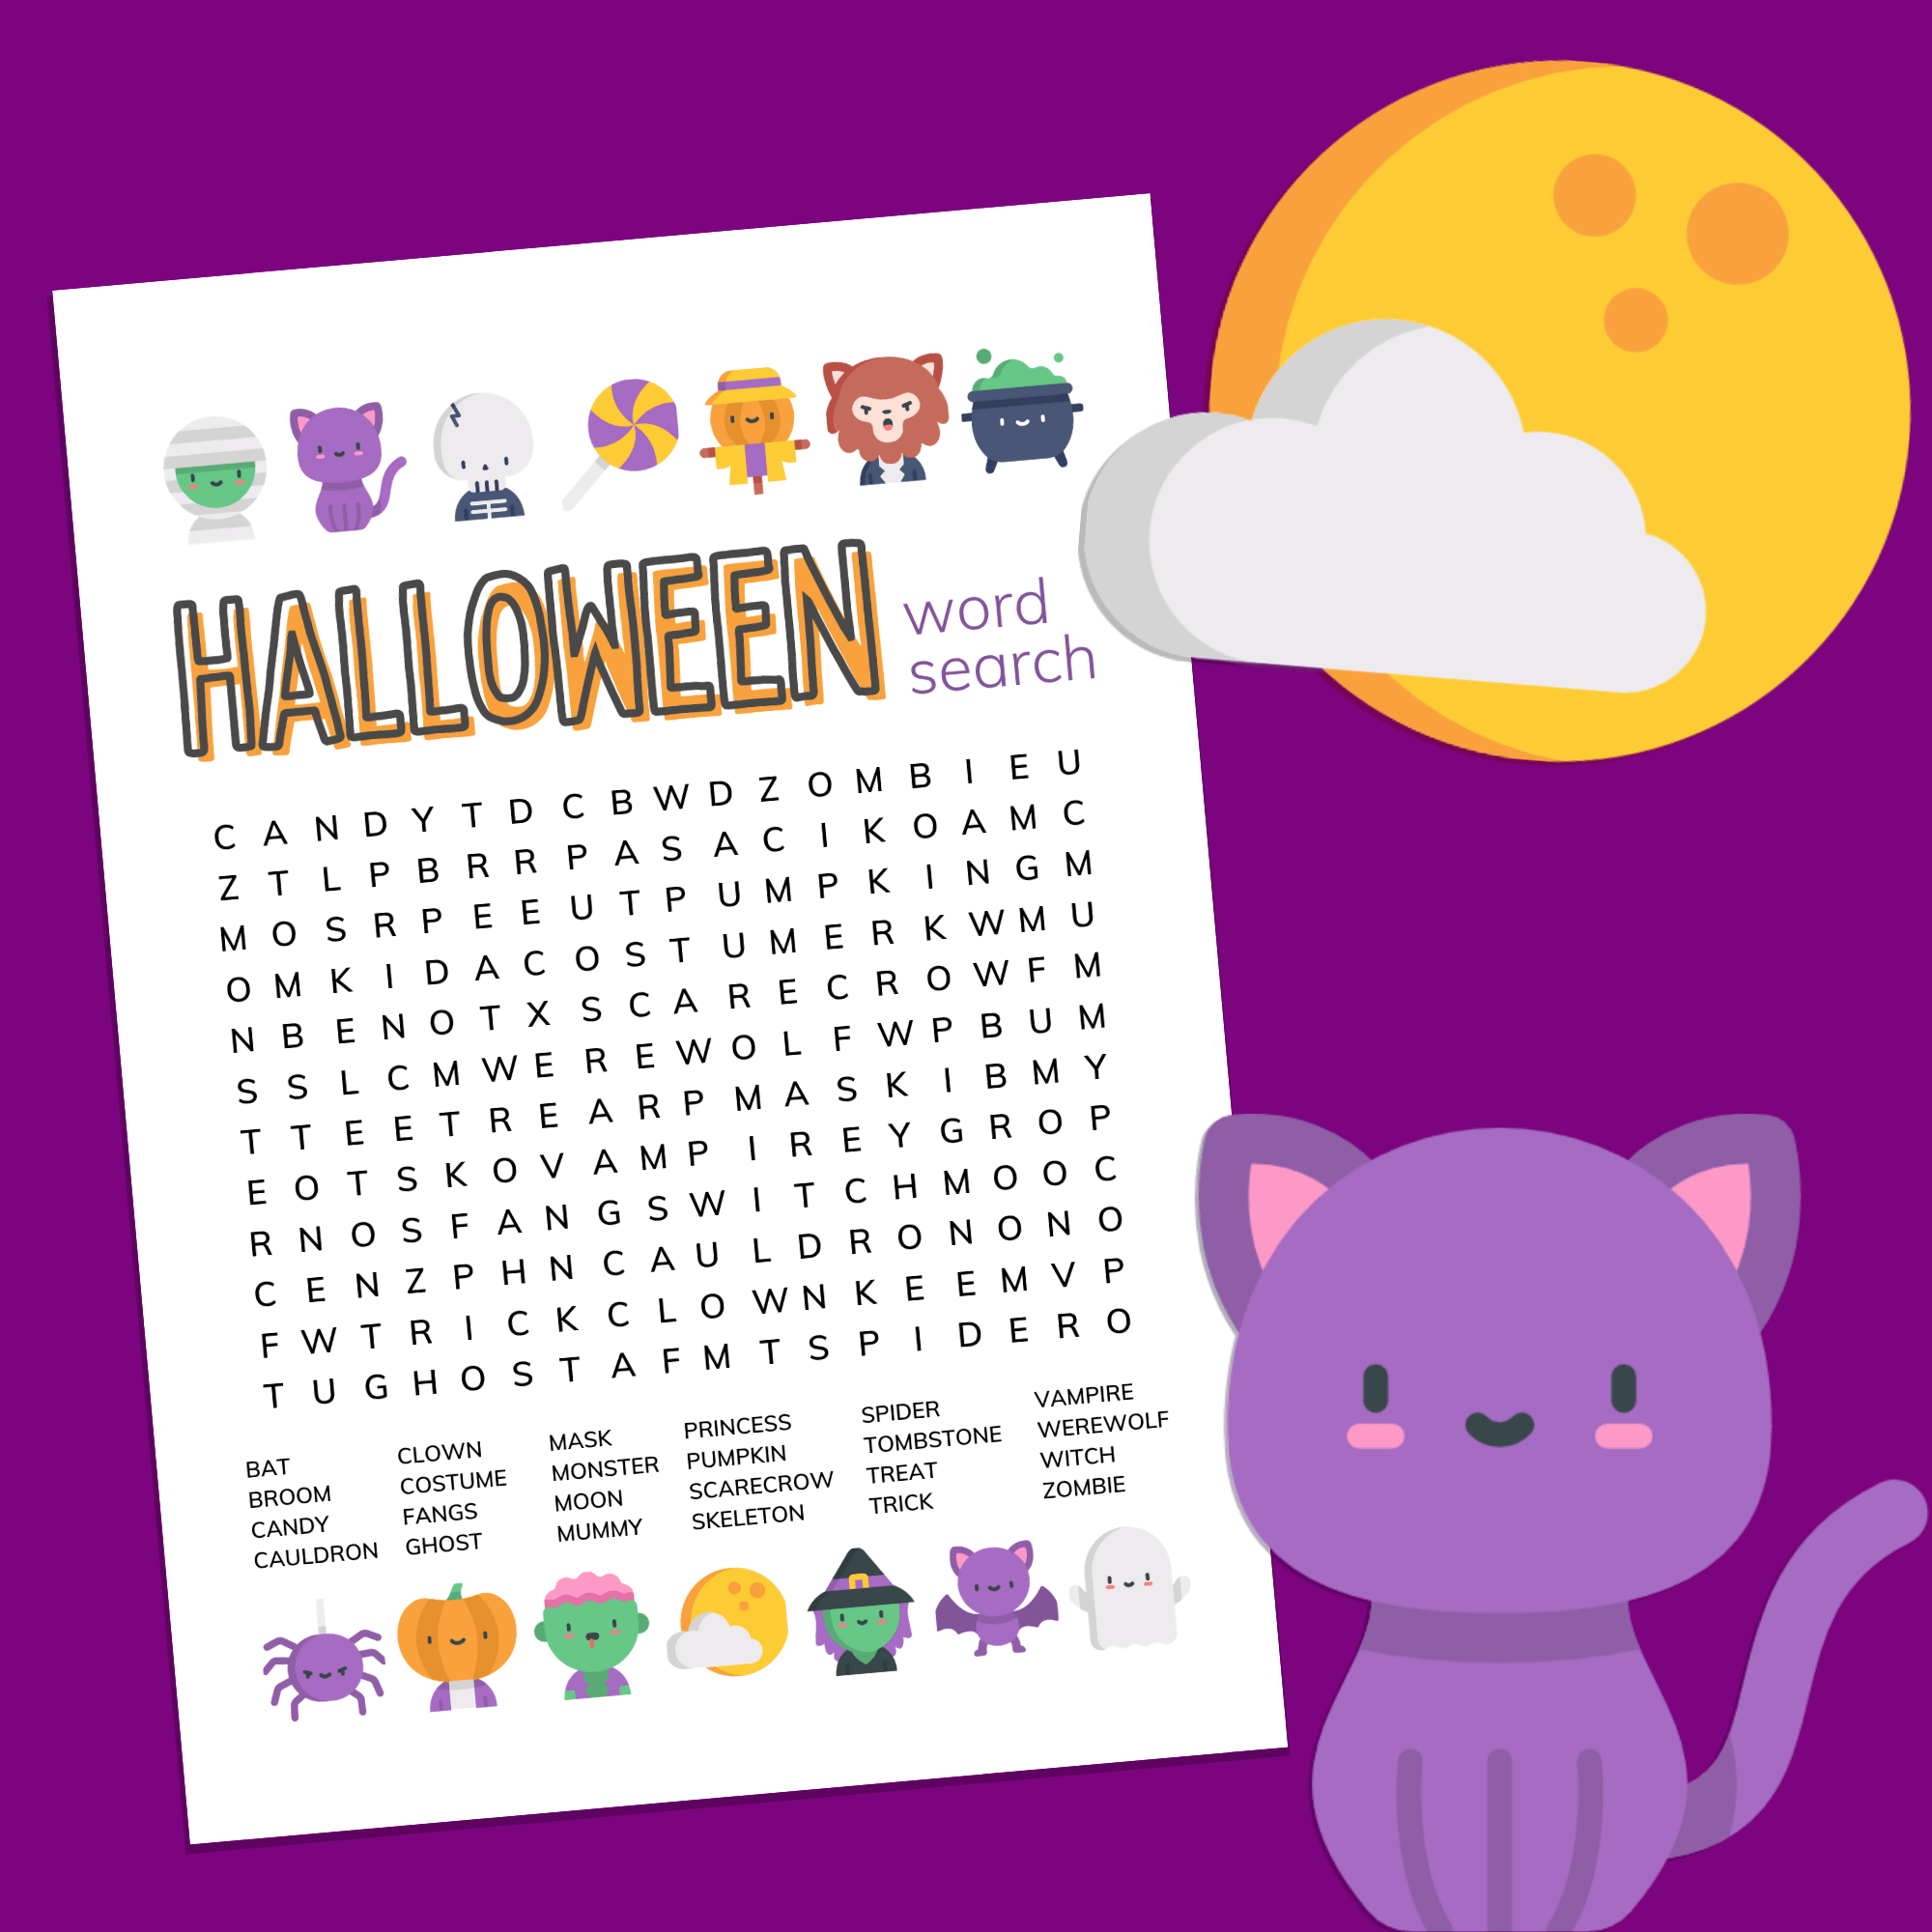 Halloween word search printable on a purple background with a cartoon spider